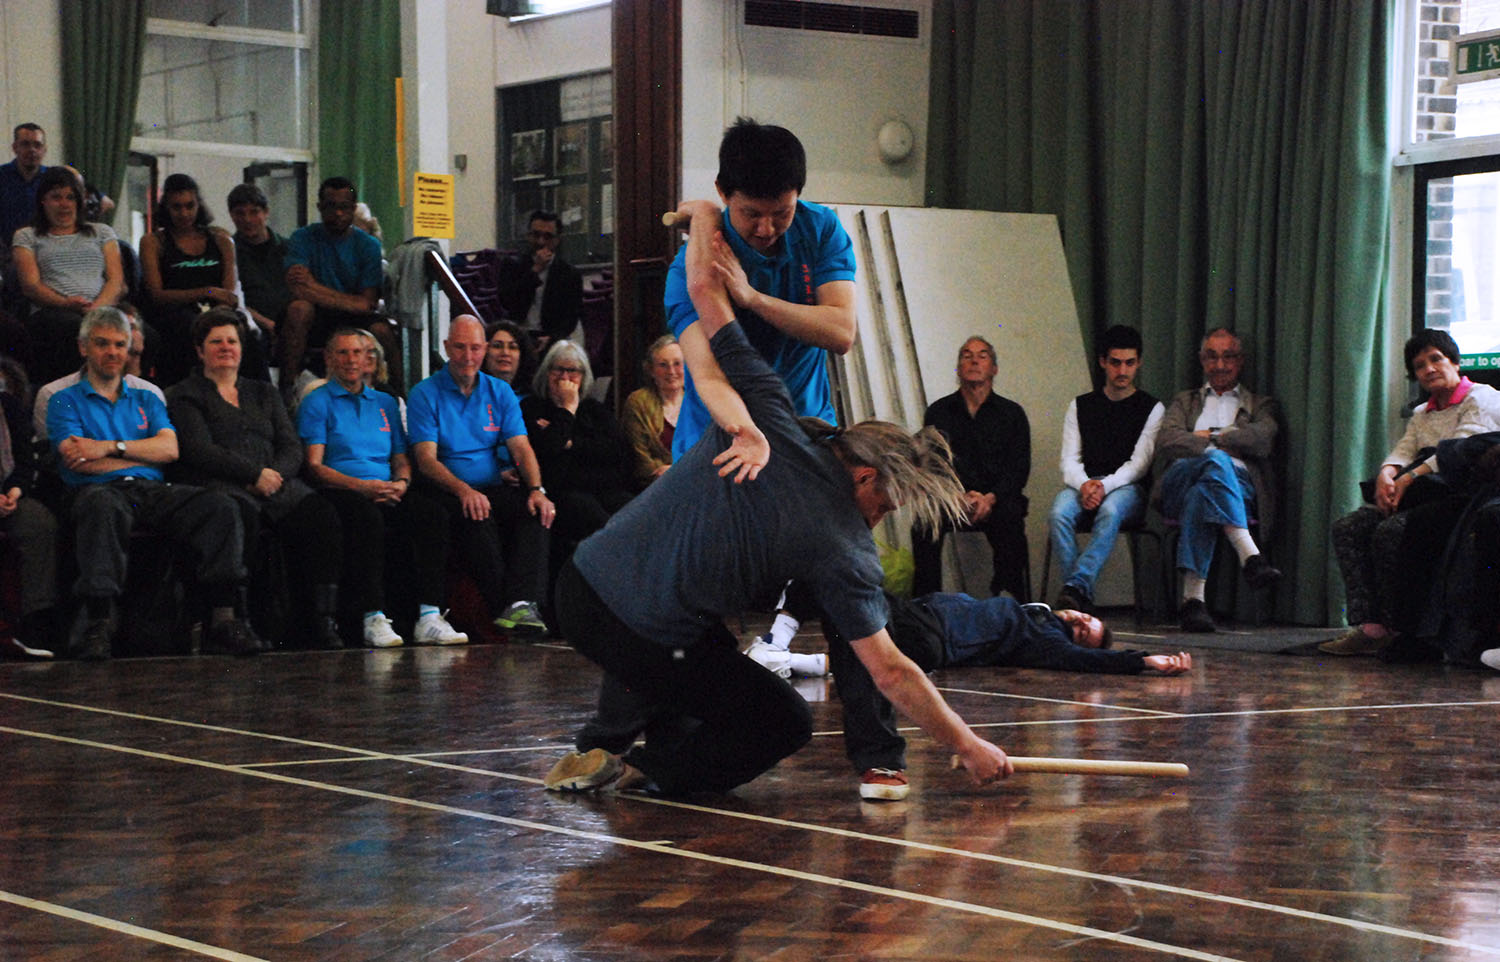 London 2015 25th Anniversary Demo Tse Qigong Centre Yelian He